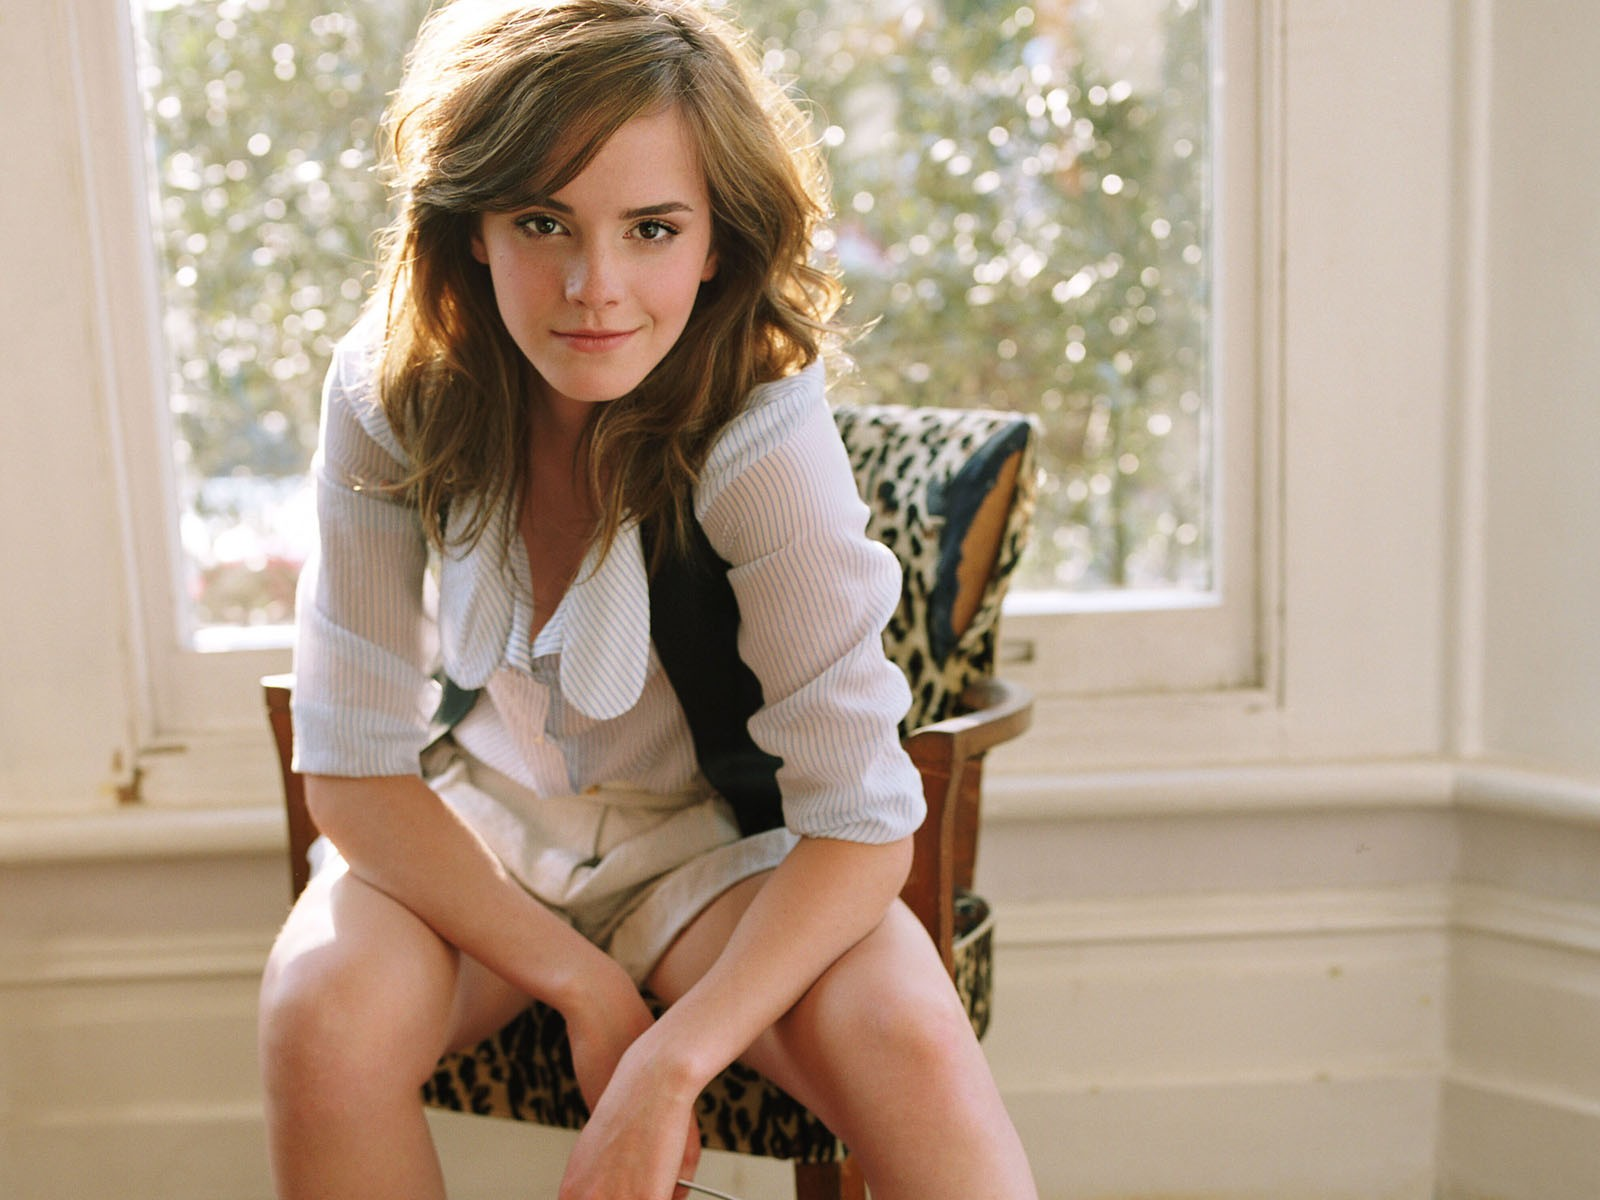 Office Chair Ballet Modern Outdoor Fire Pit Chairs Celebrity Pictures And Biography: Emma Watson